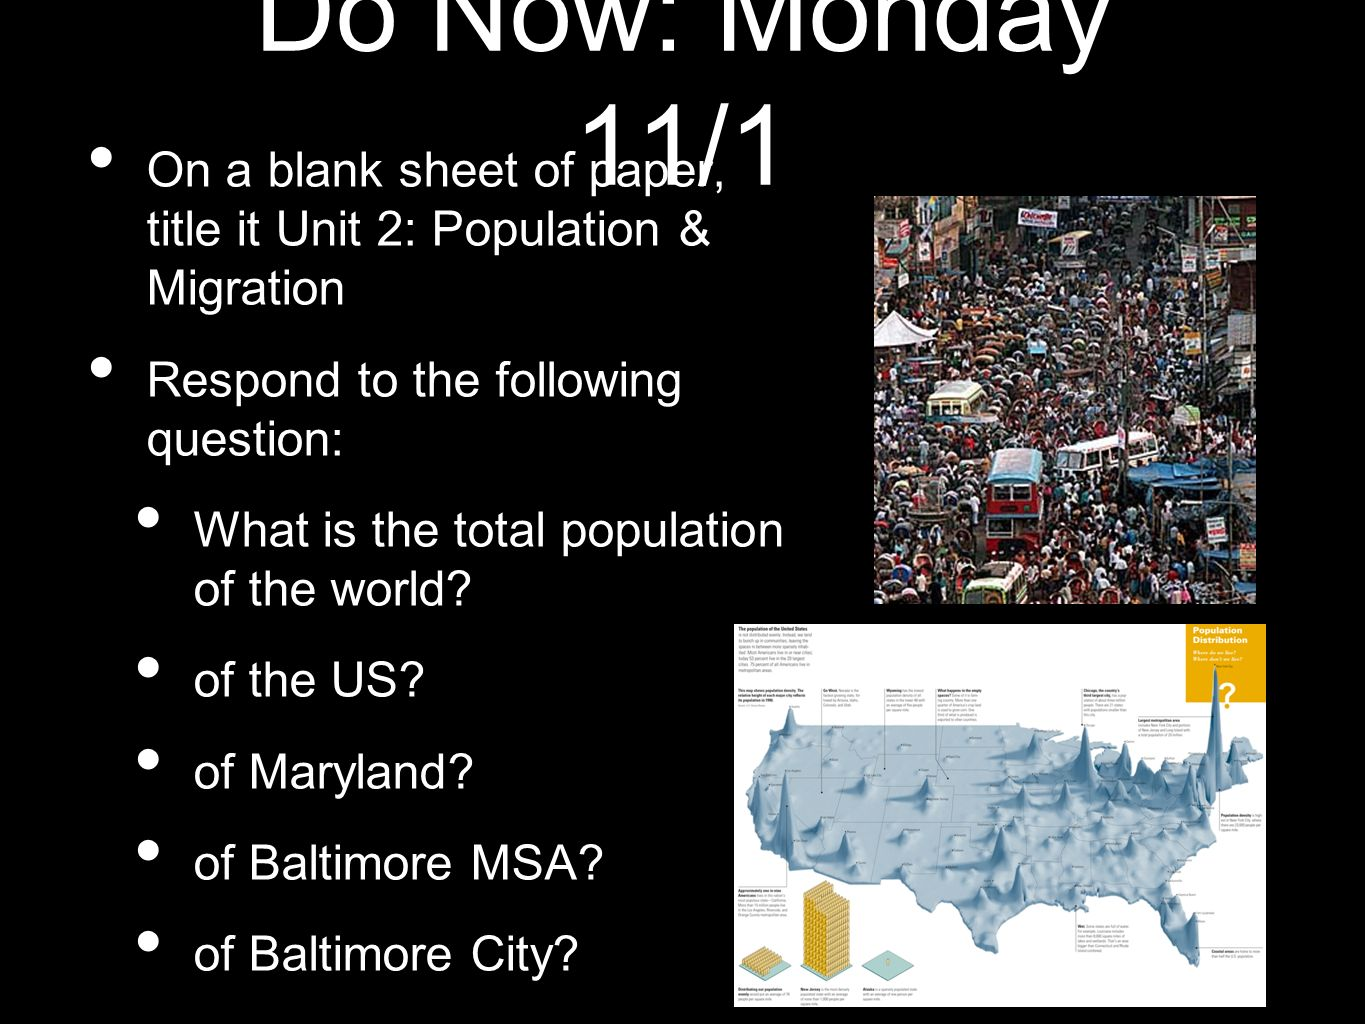 Do Now: Monday 11/1On a blank sheet of paper, title it Unit 2: Population & Migration. Respond to the following question: